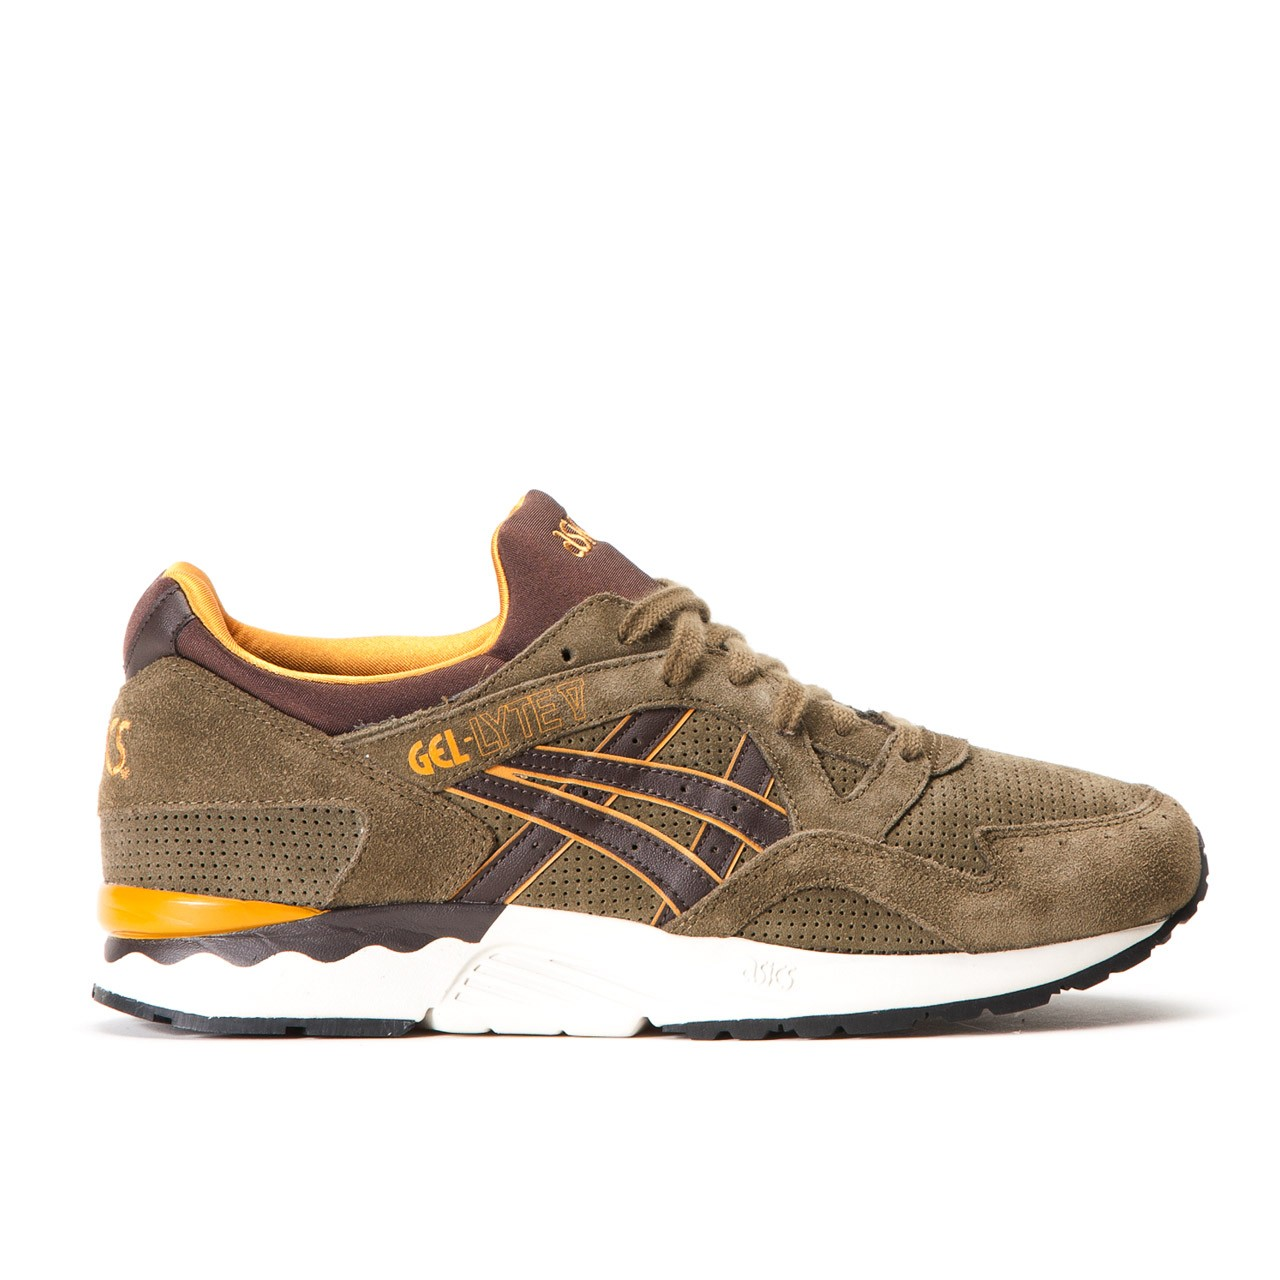 93d8eb133 official the asics gel lyte iii and asics gel lyte v bamboo pack are  available for